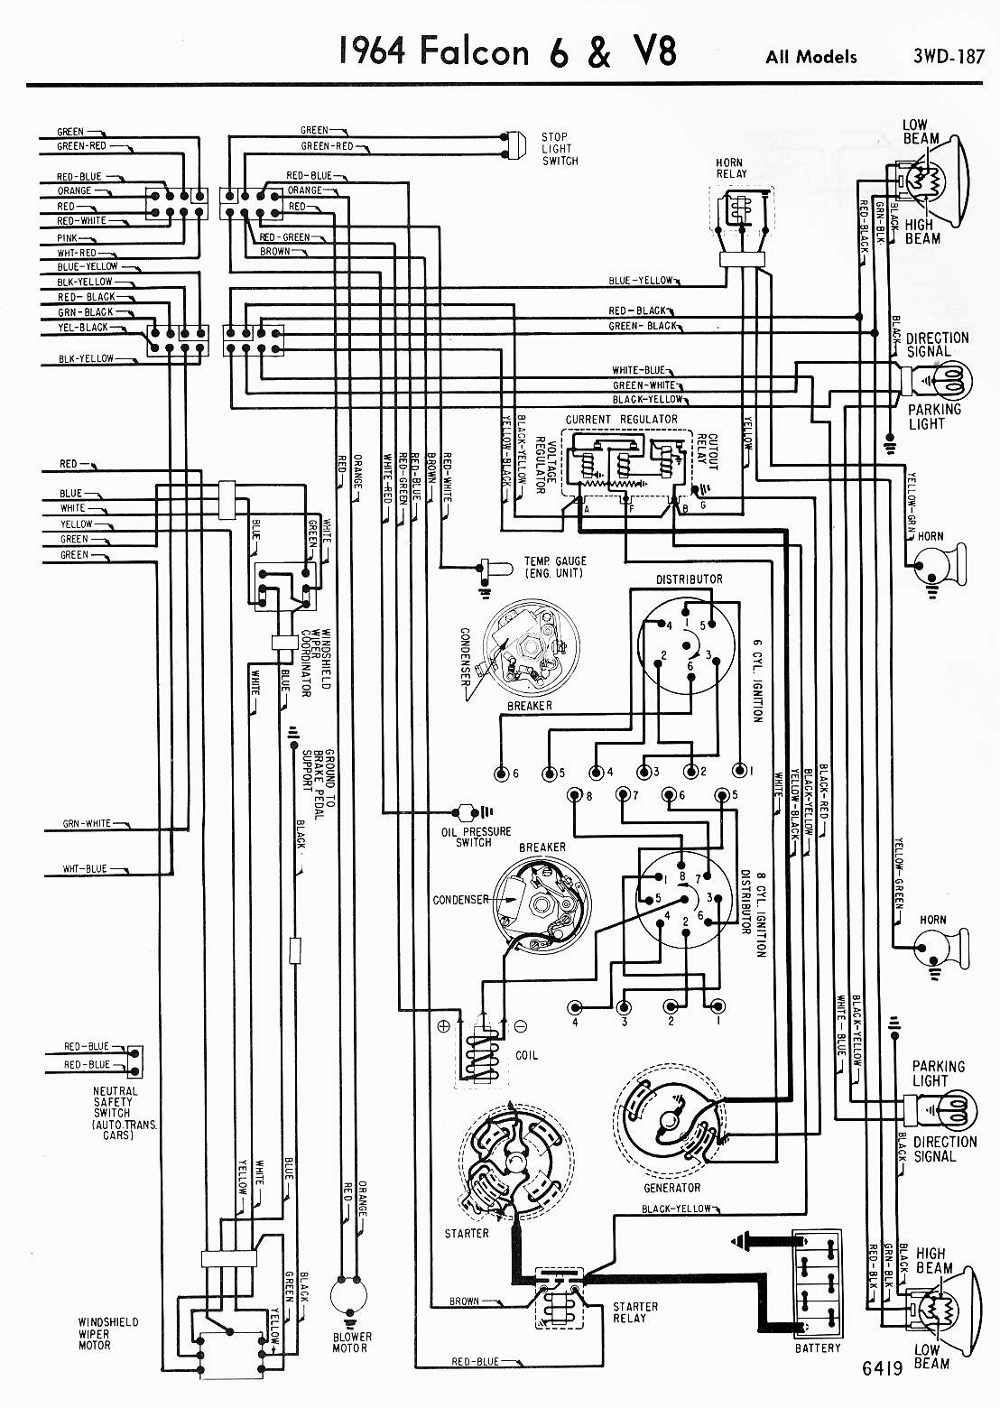 1964 Ford Falcon Wiring Schematic Data F100 Diagram Diagrams Of 6 And Station Wagon